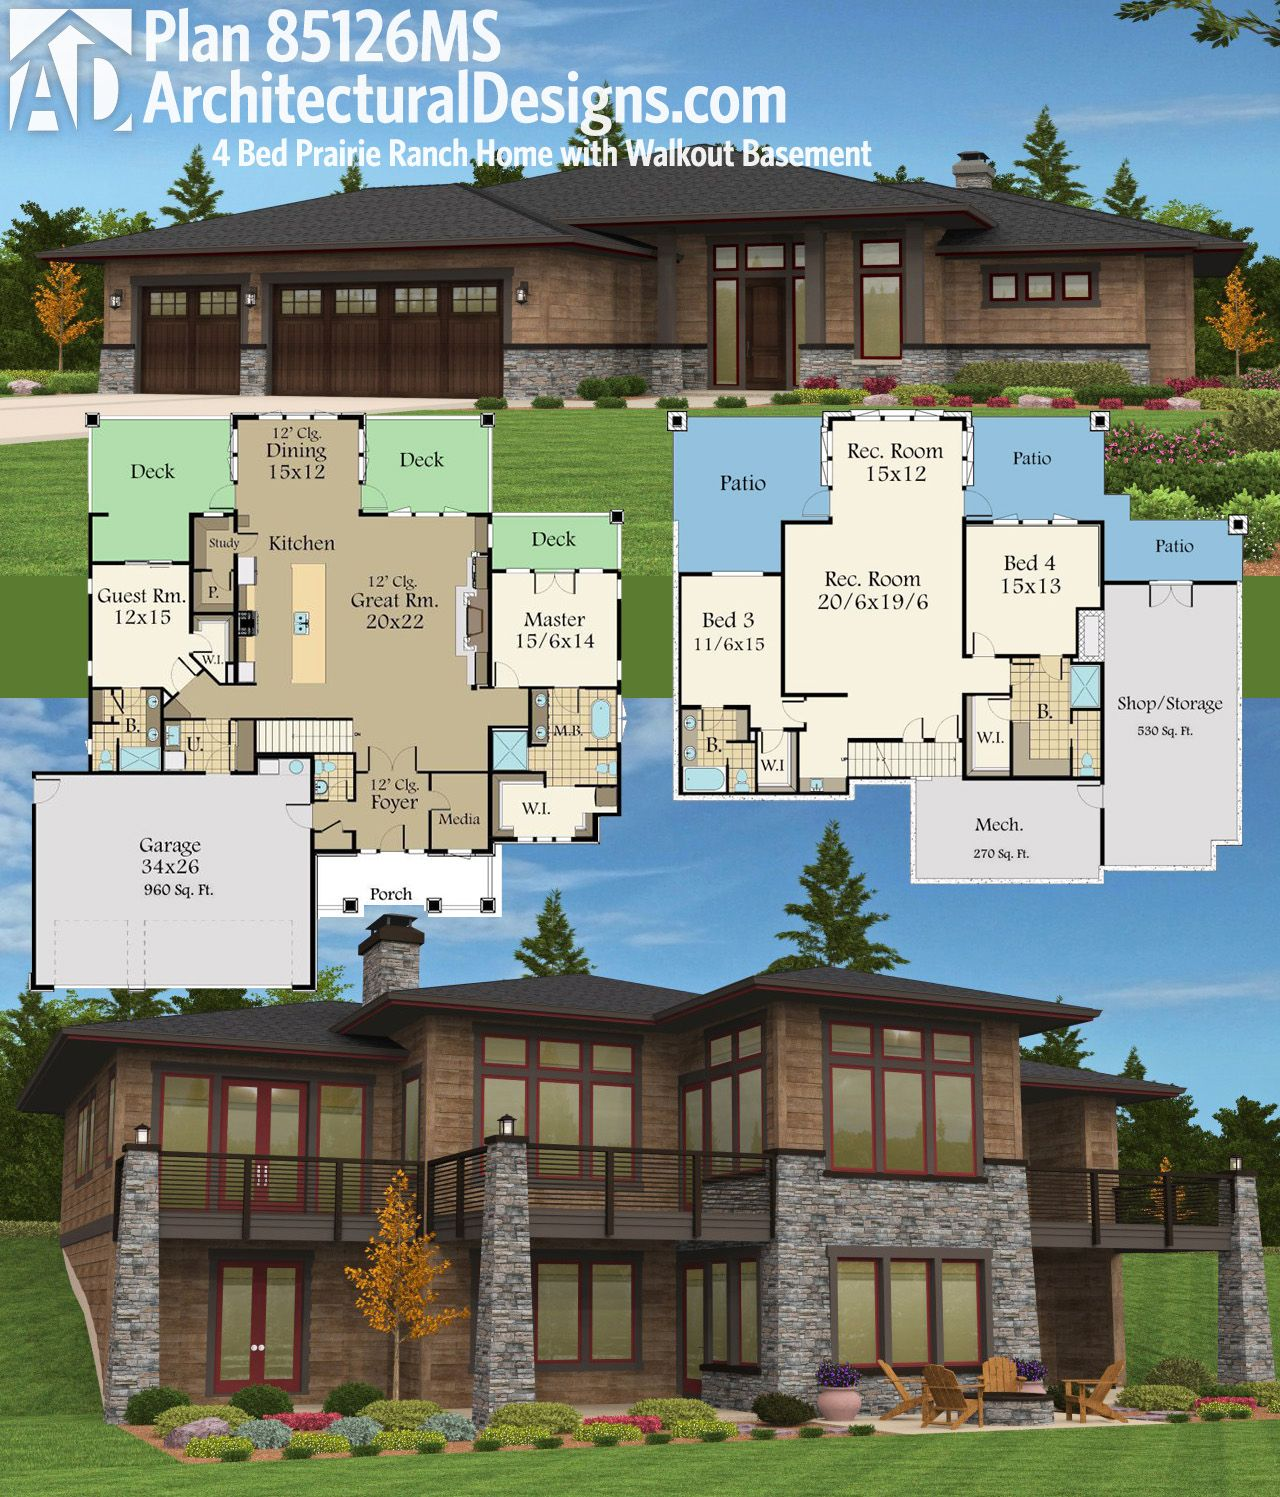 Plan 85126MS: Prairie Ranch Home With Walkout Basement